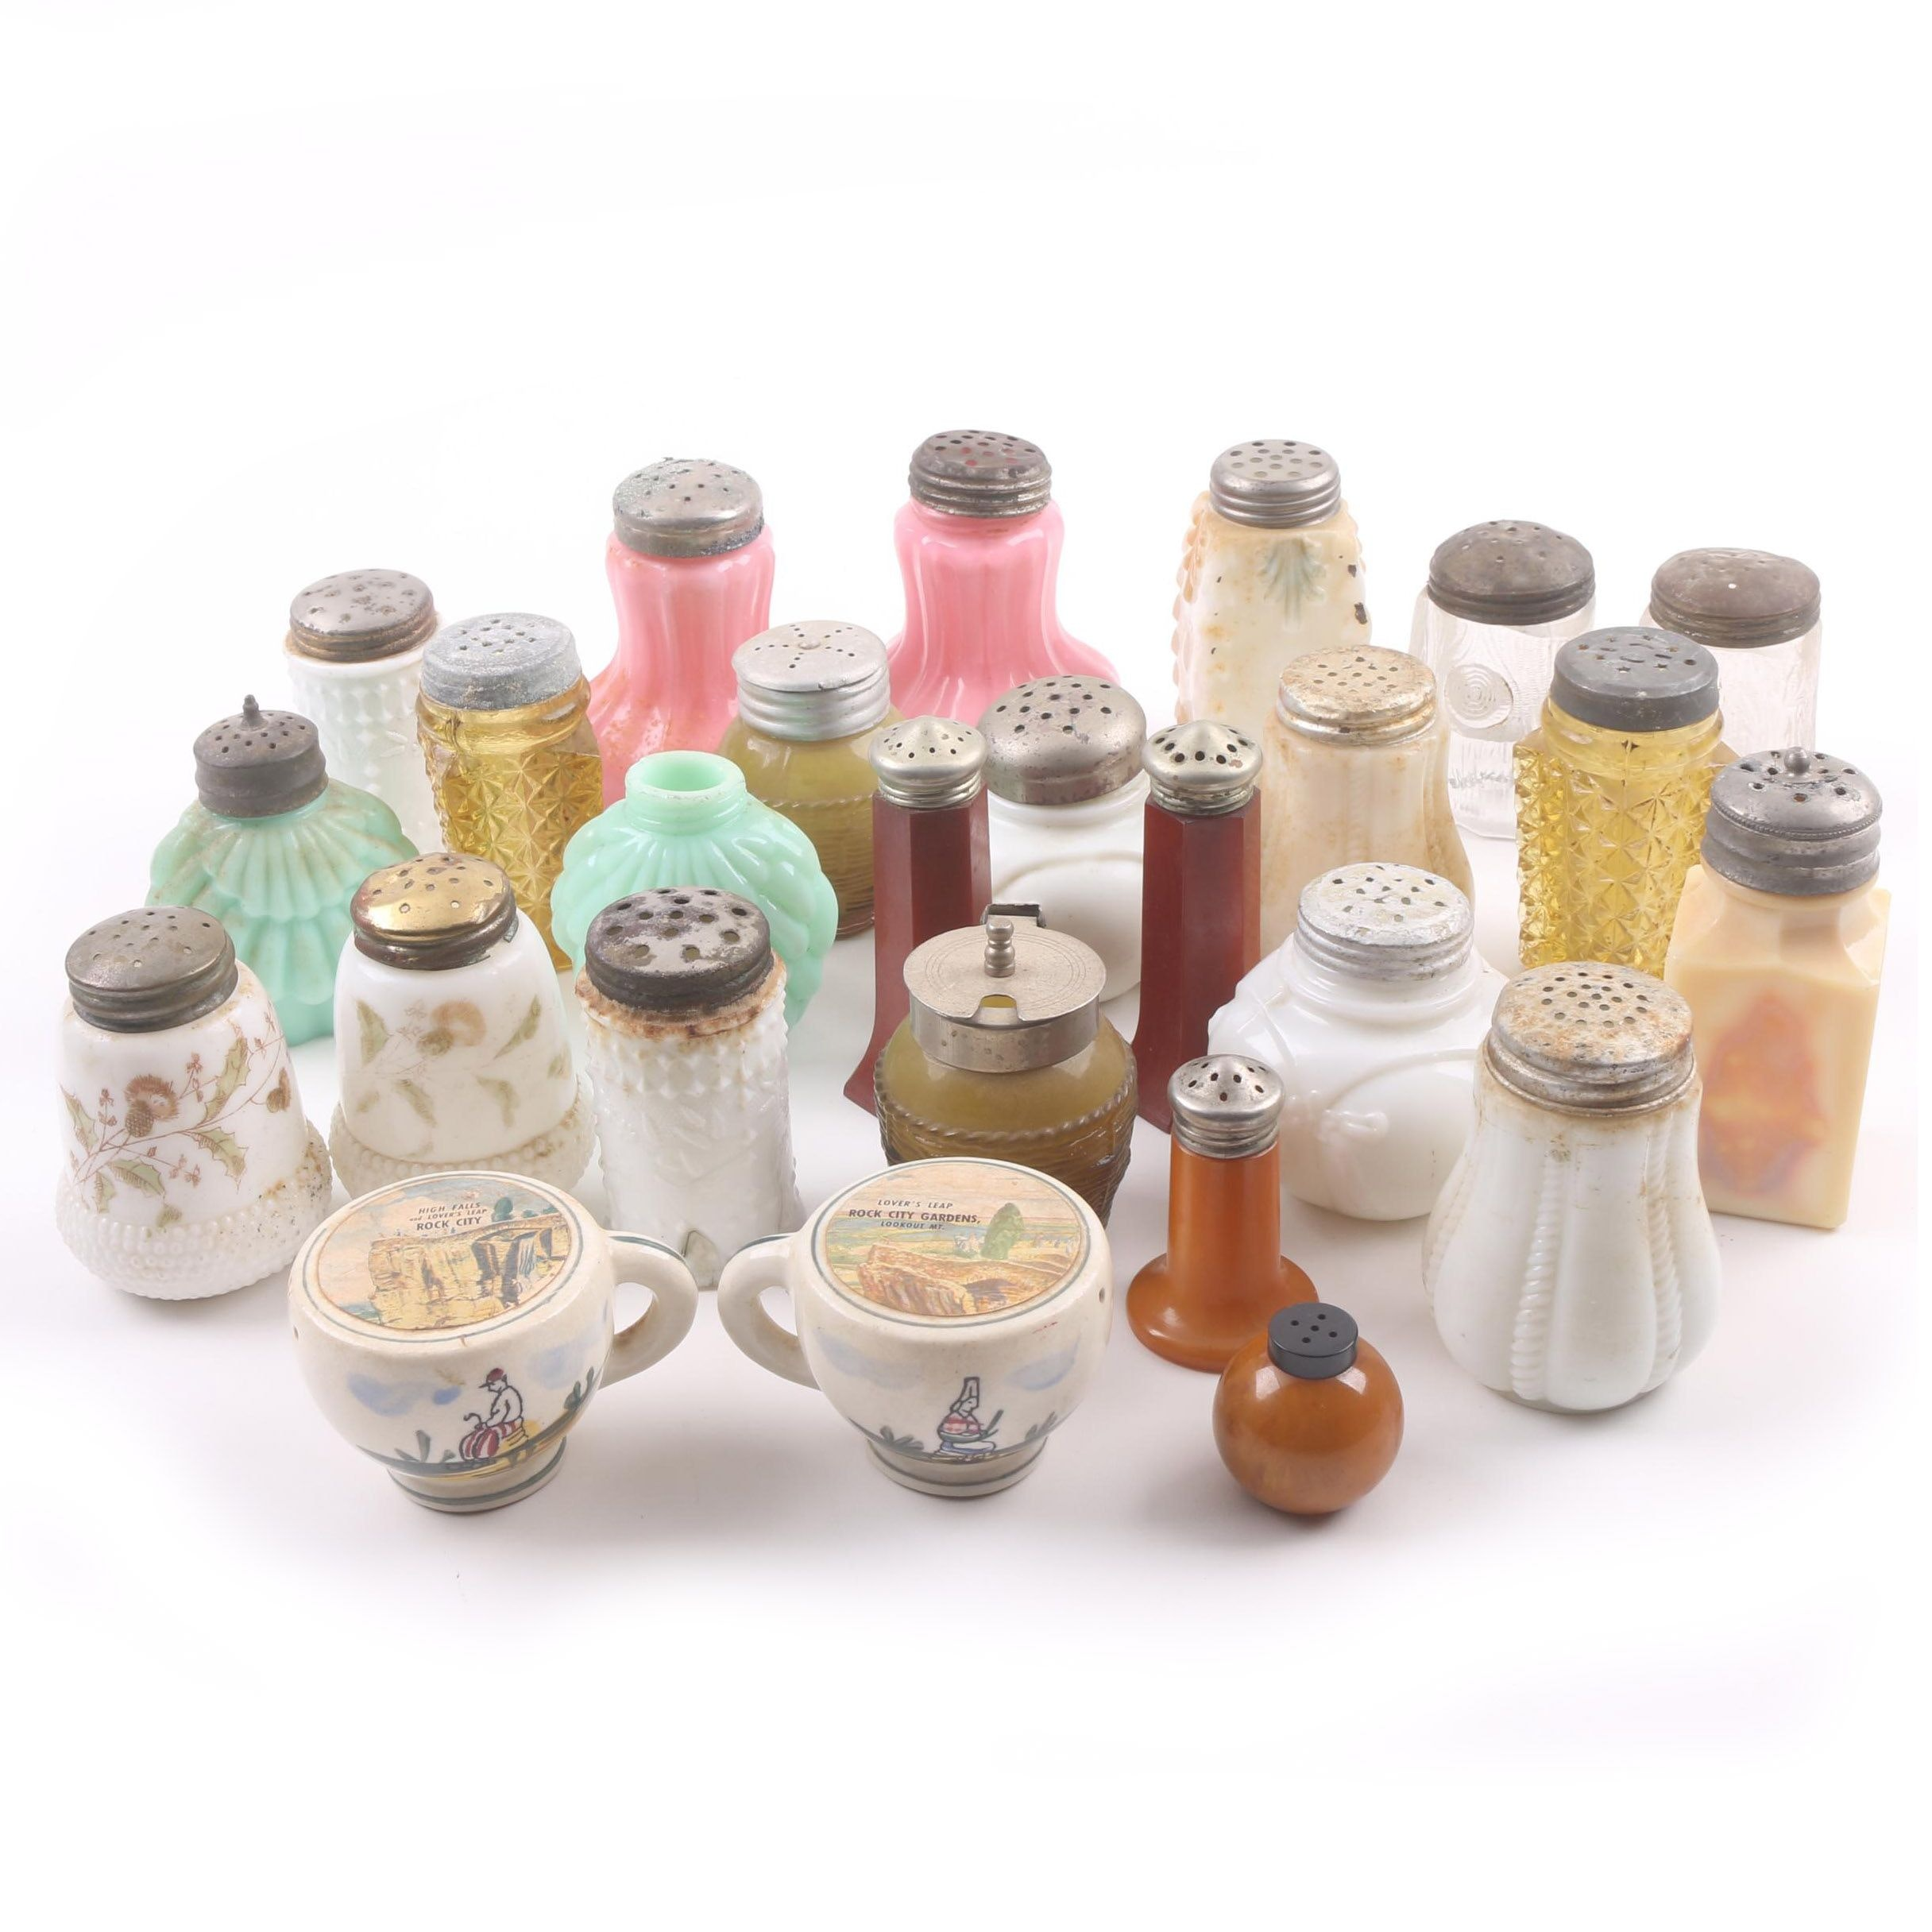 Vintage Glass, Milk Glass and Ceramic Salt and Pepper Shakers